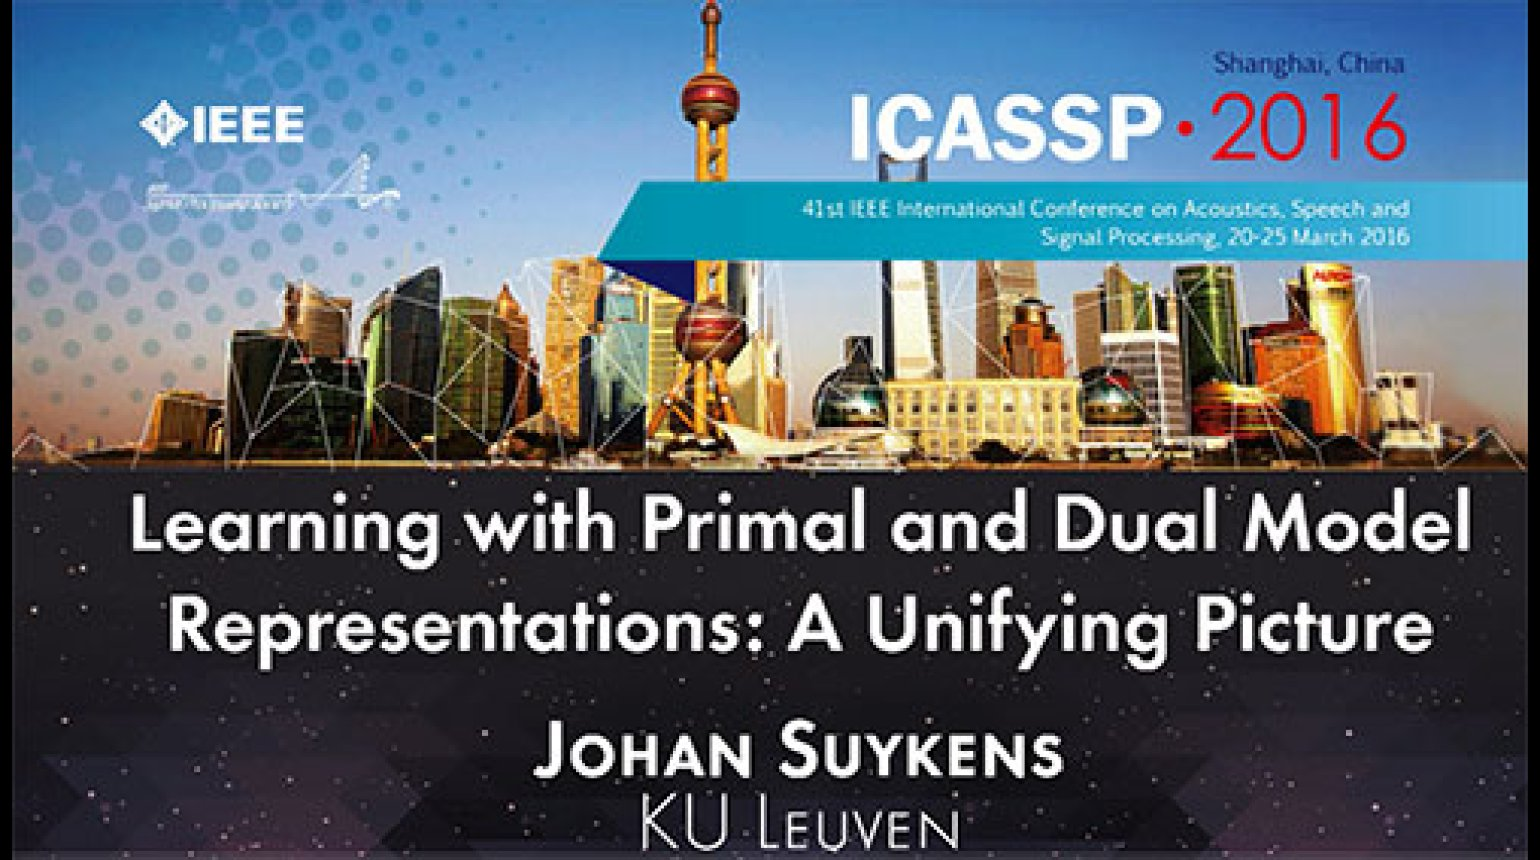 ICASSP 2016 Learning with Primal and Dual Model Representations: A Unifying Picture